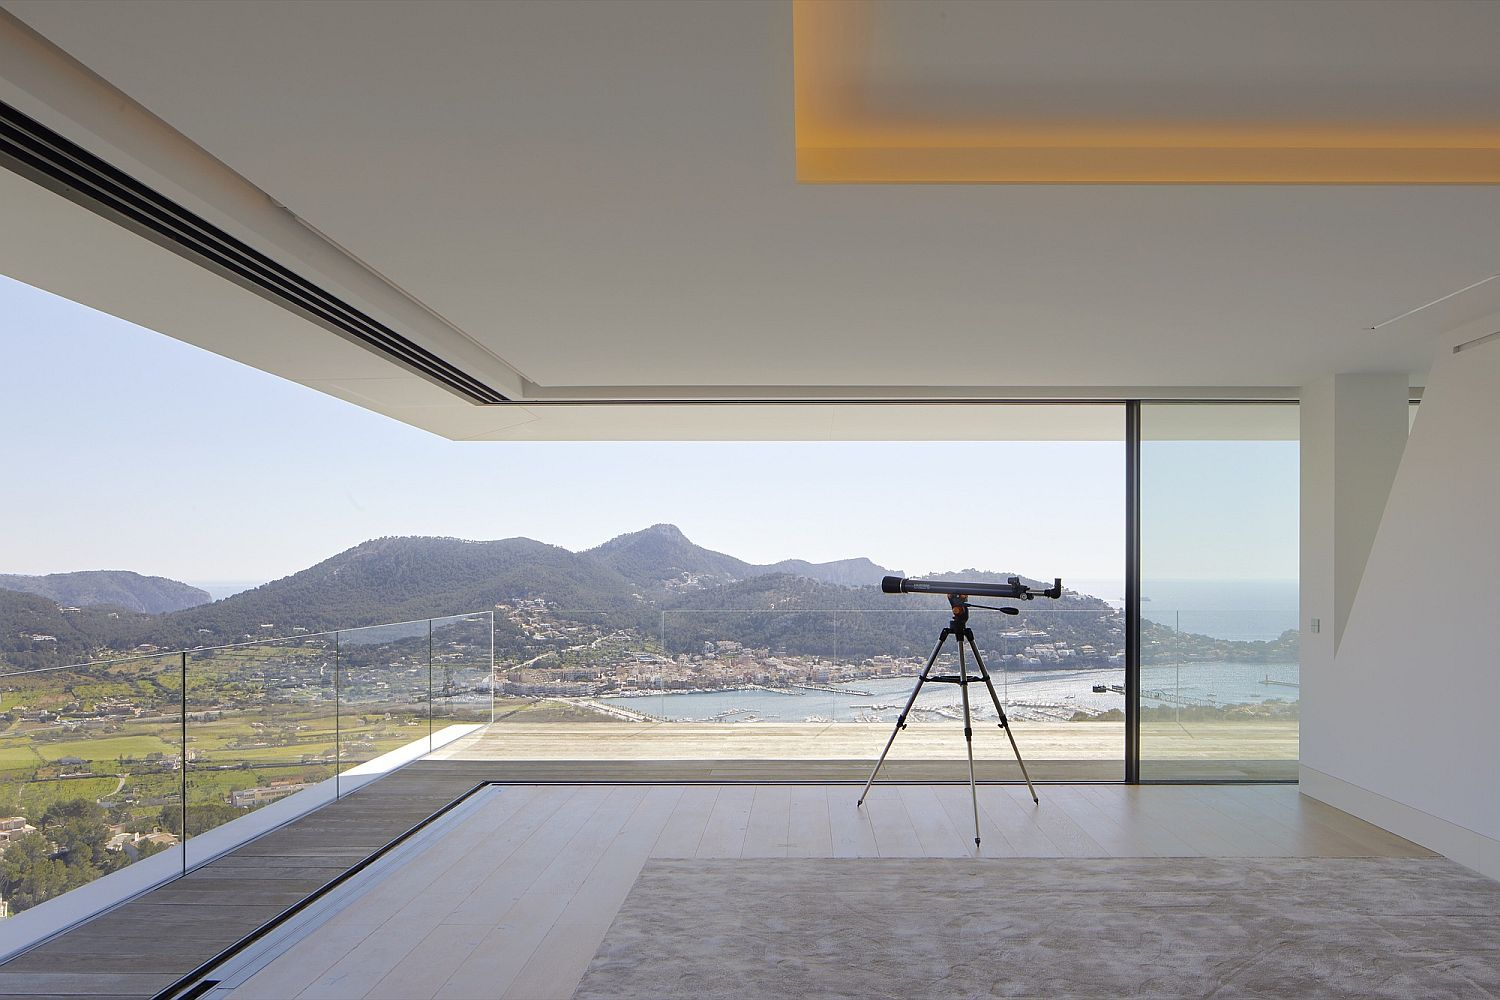 Multiple view points around the house help in providing 360 degree views